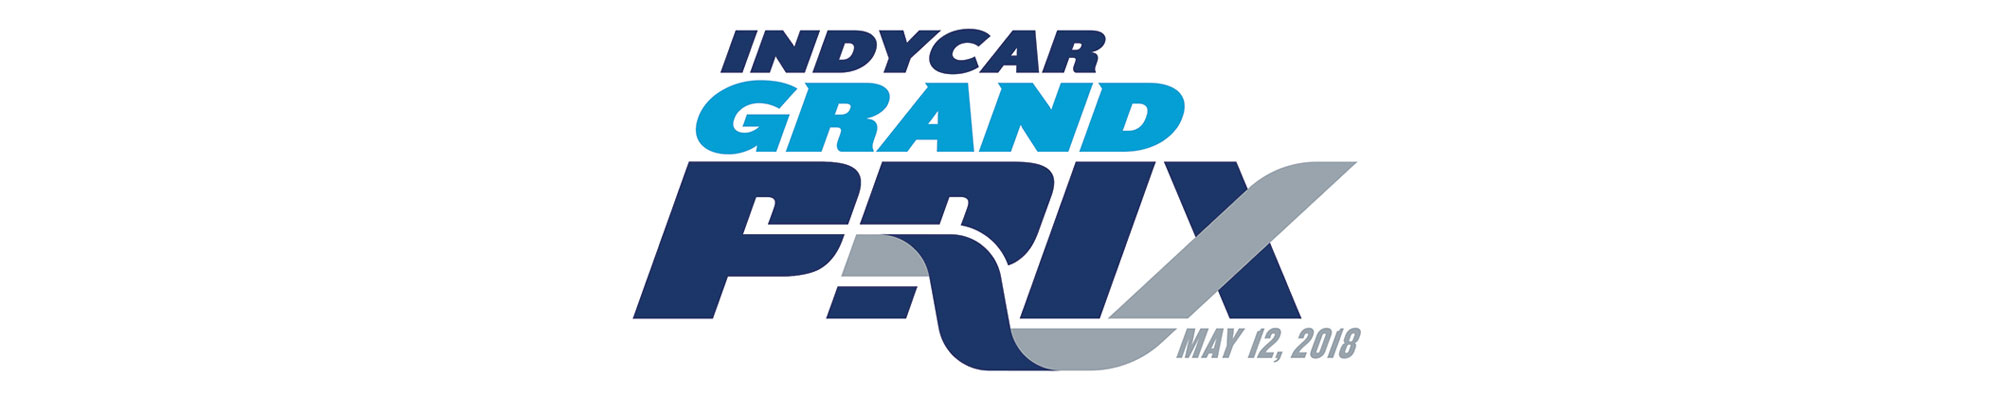 header-indycar-grand-prix-2018.jpg